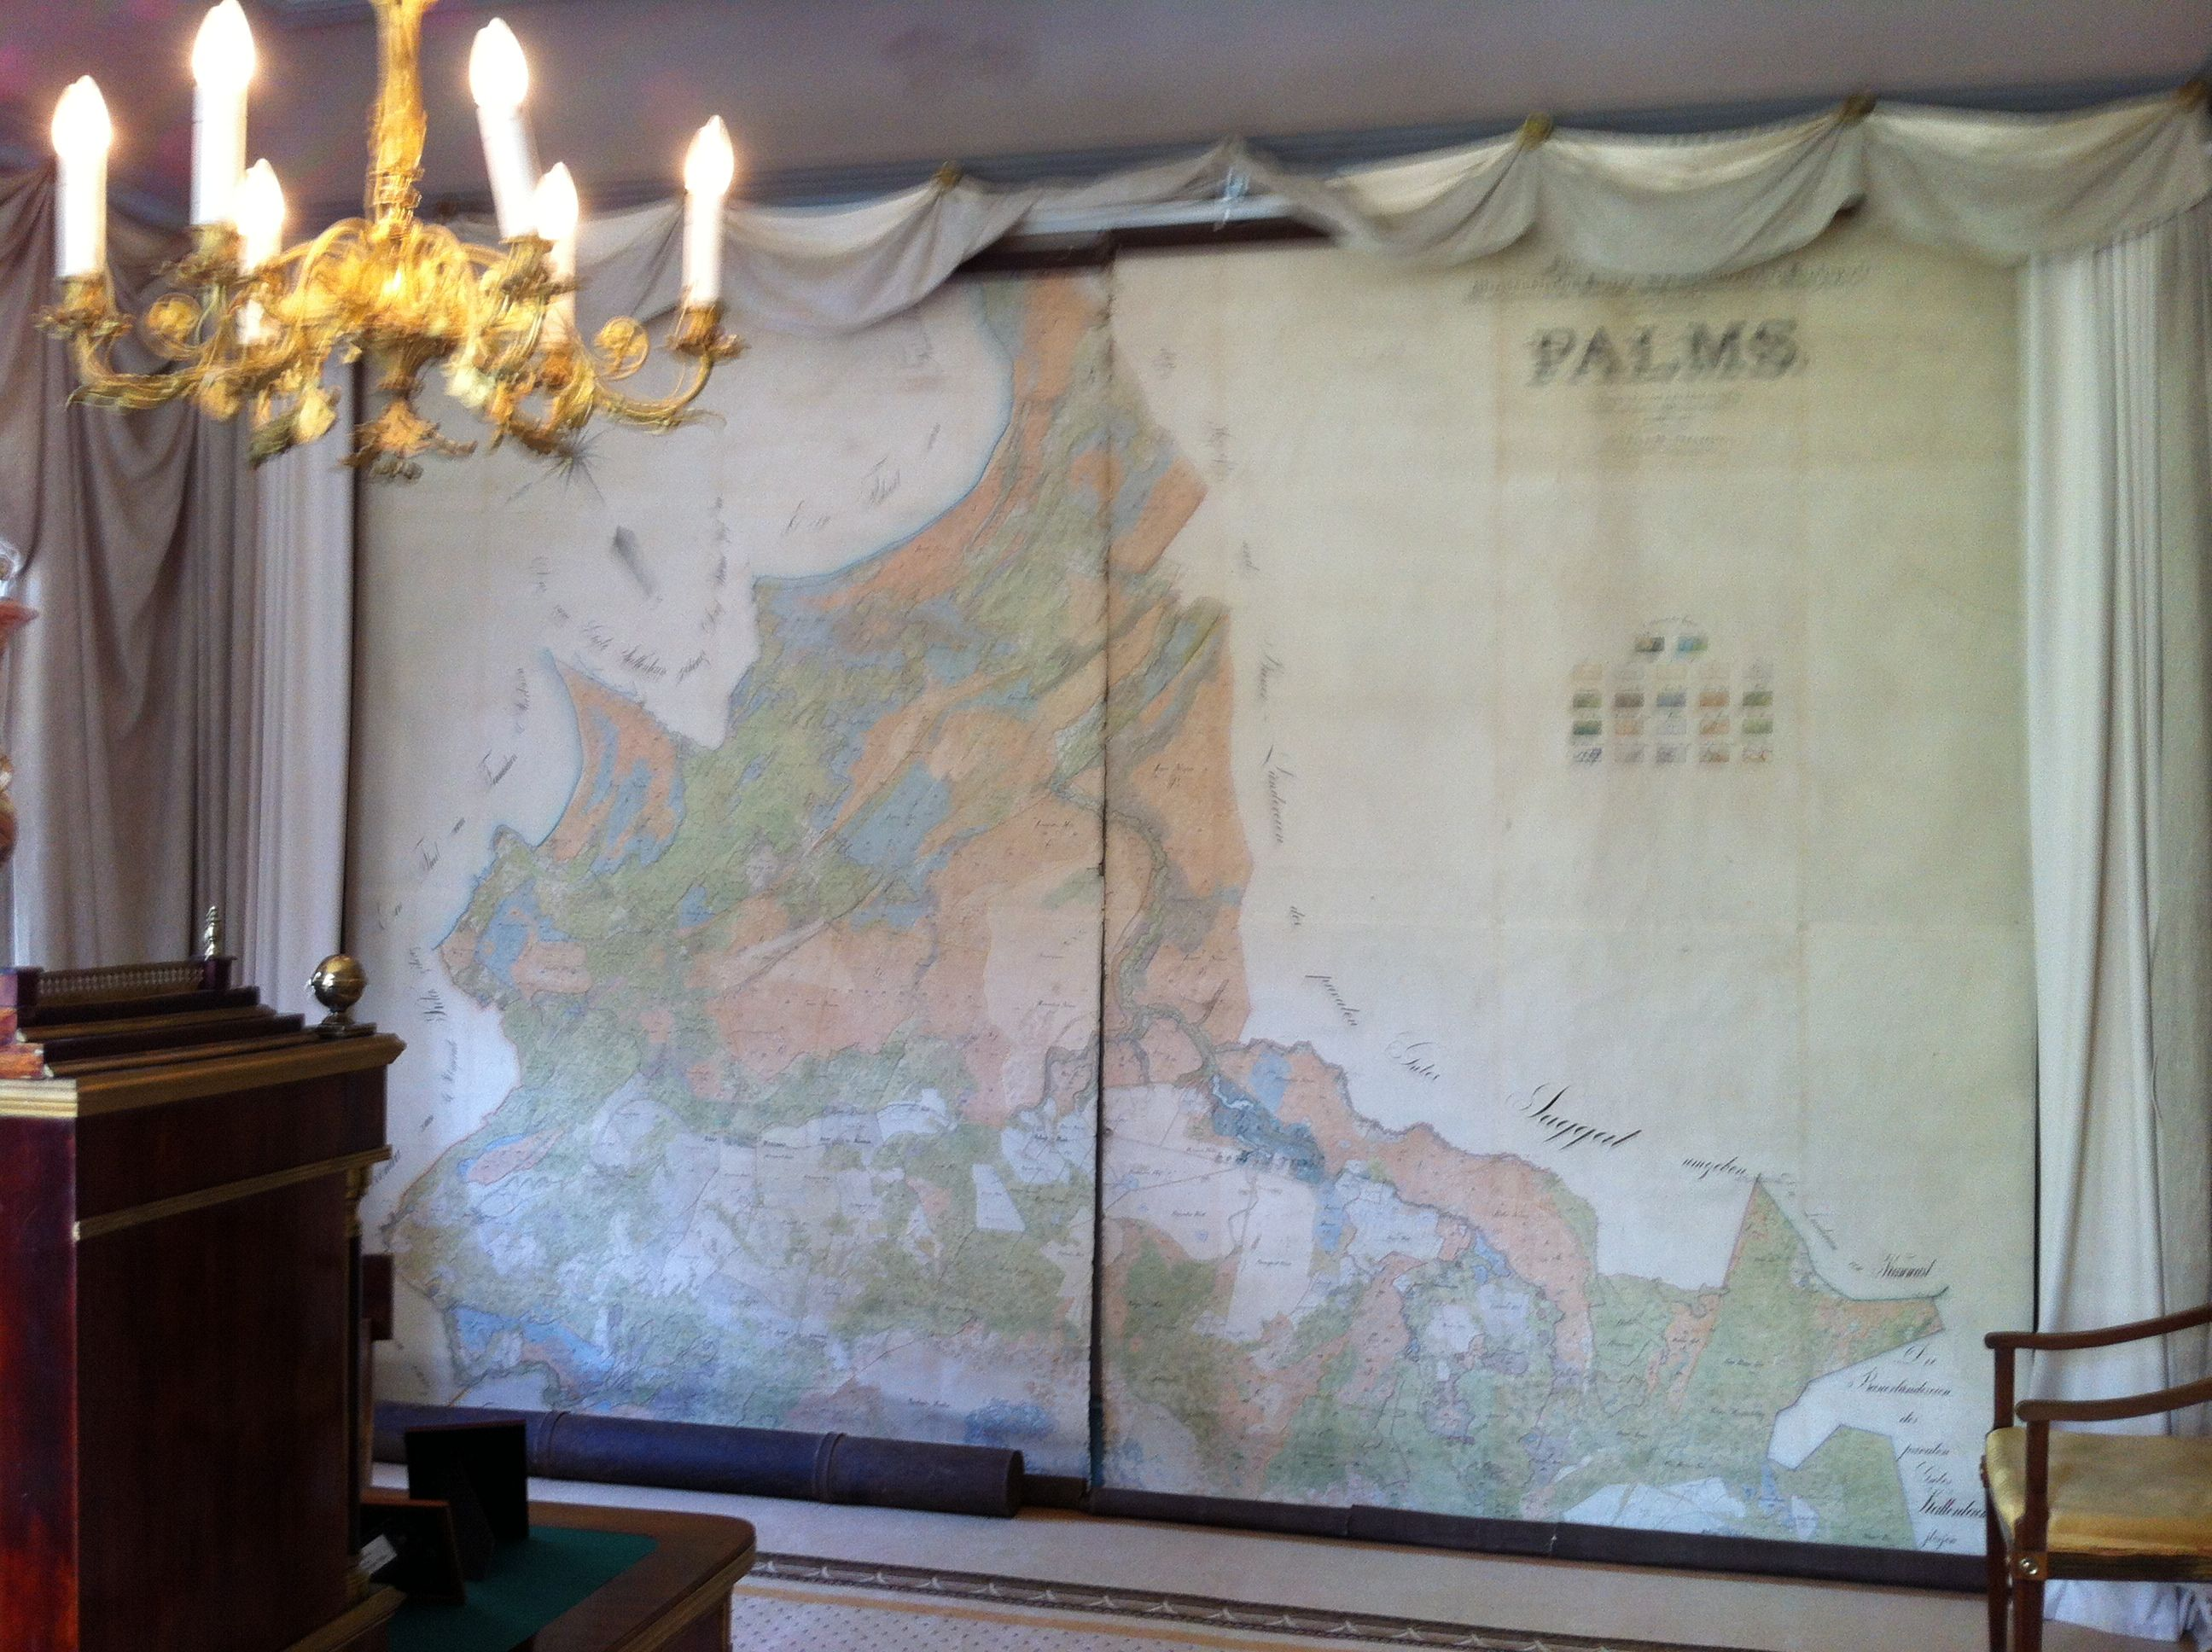 Framed map of the estate - Palmse Manor, Estonia